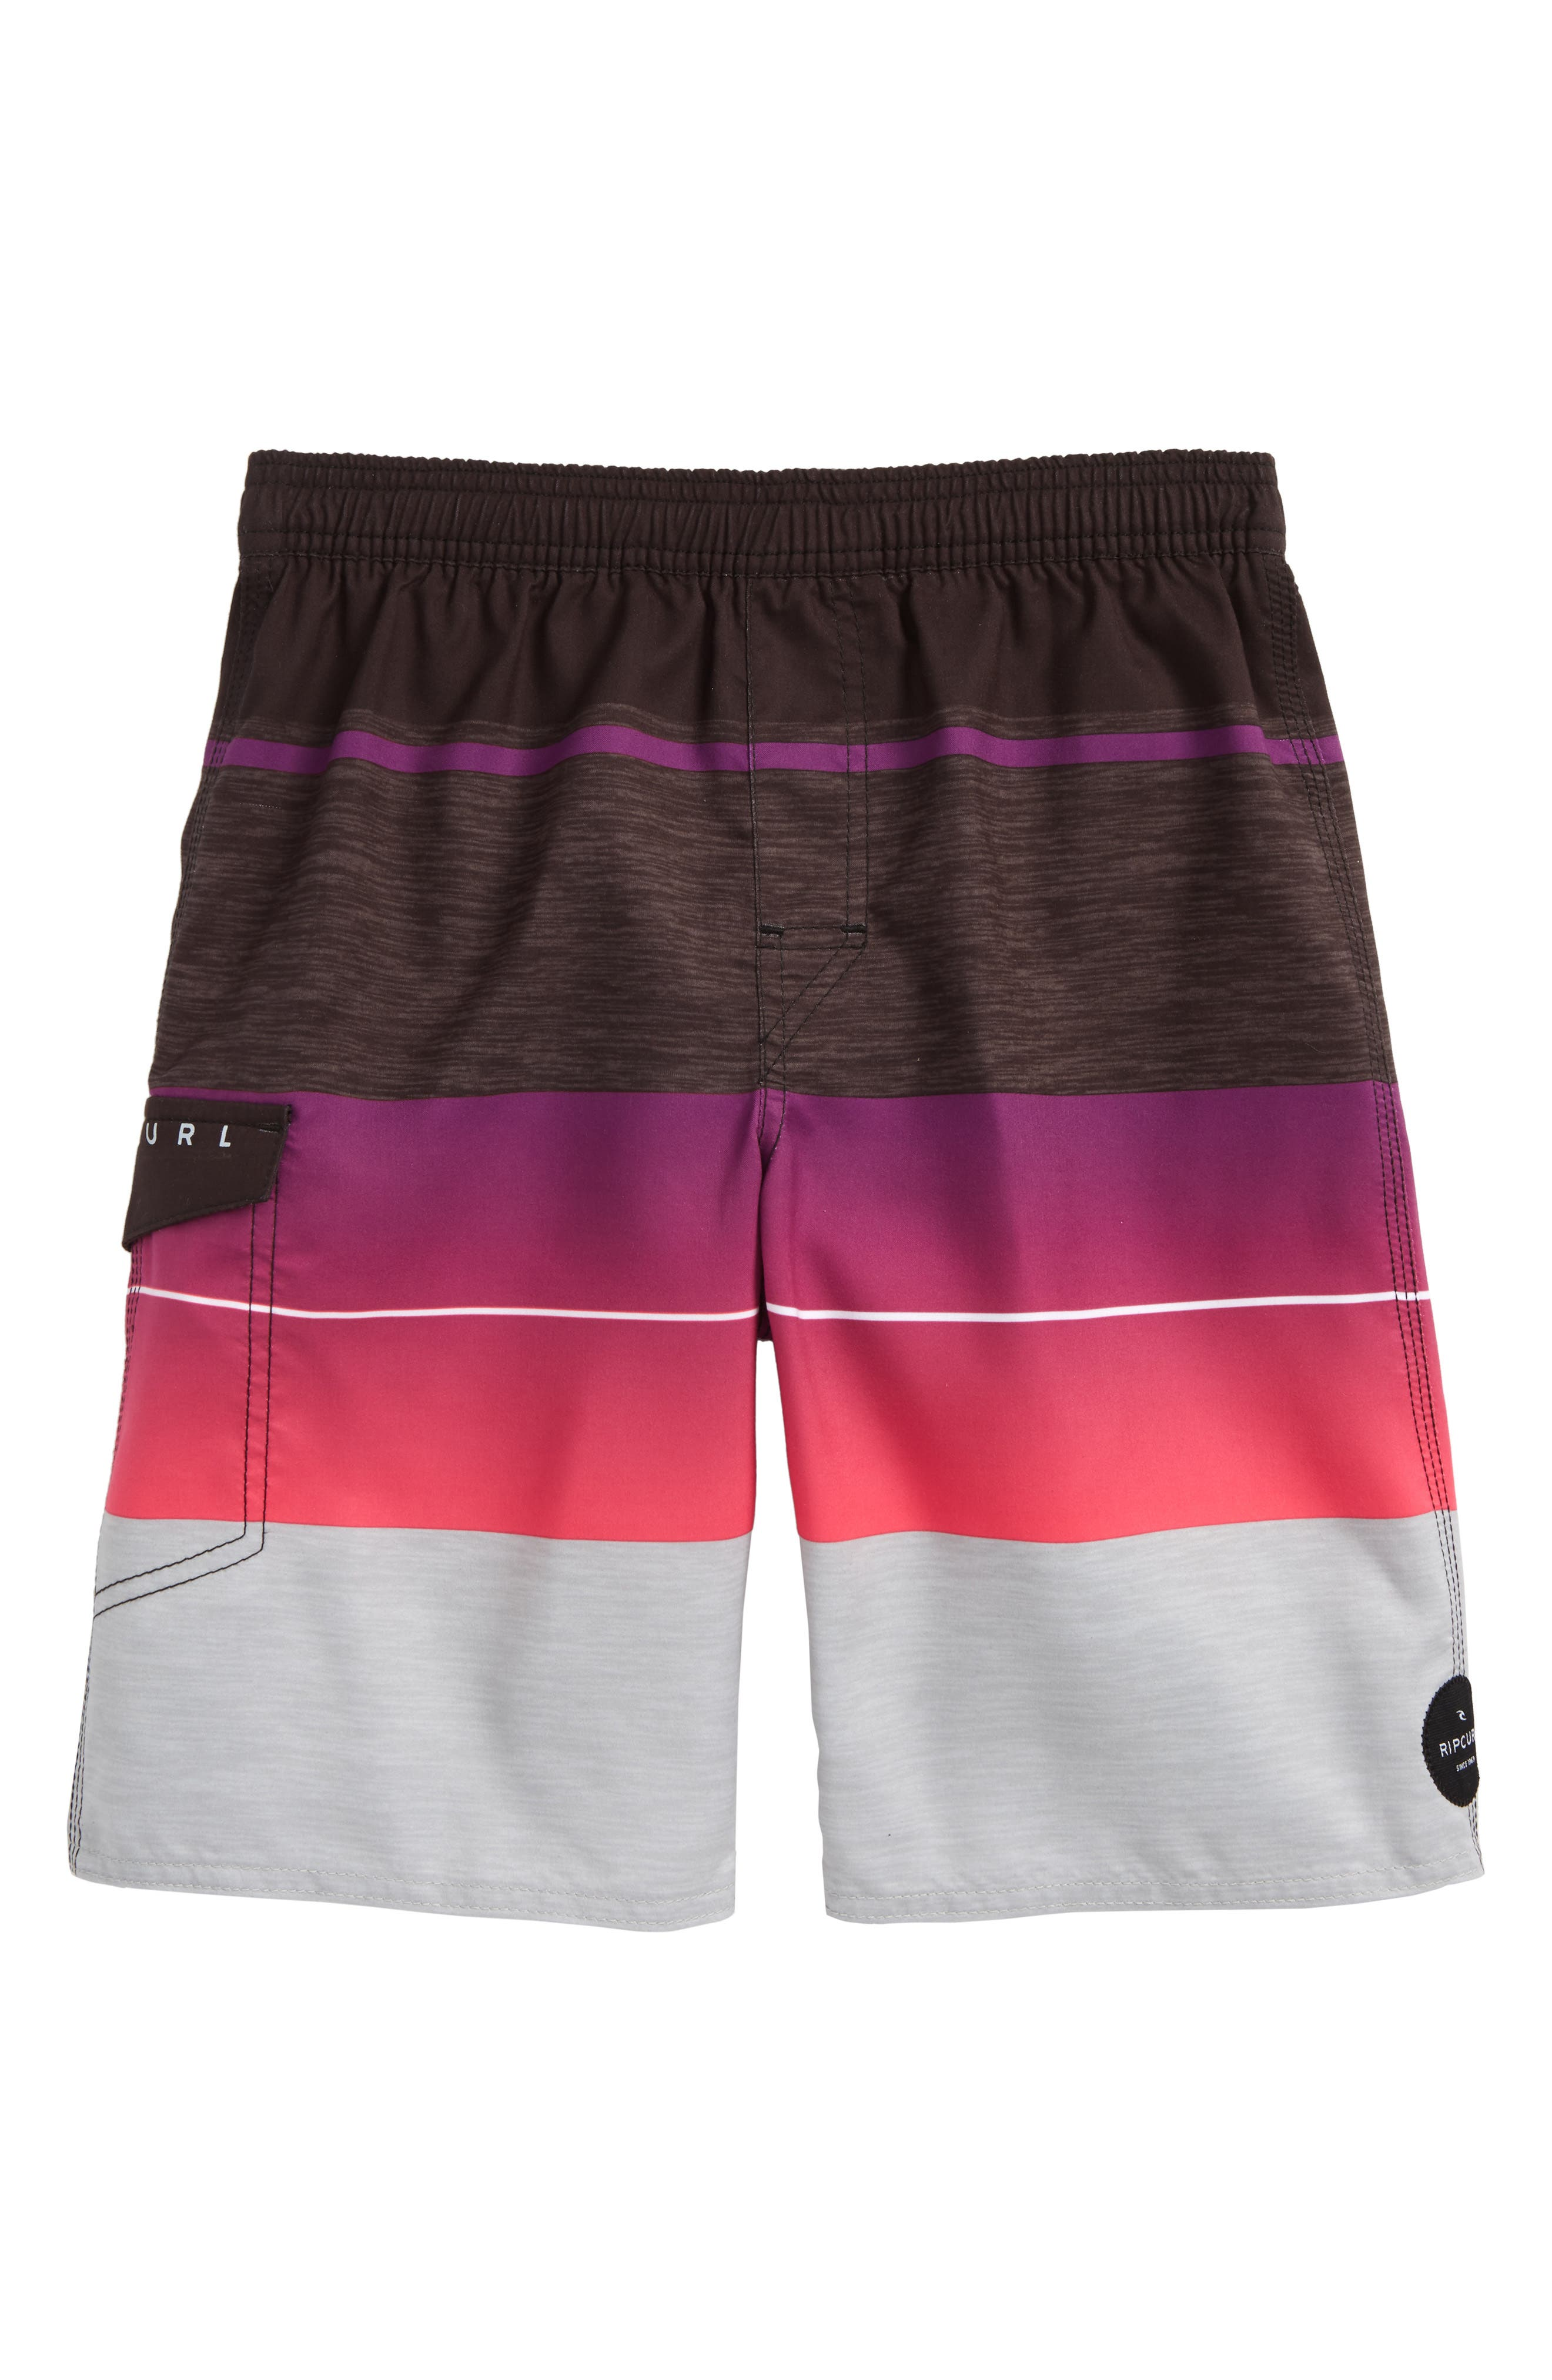 Eclipse Volley Shorts,                         Main,                         color, Pink